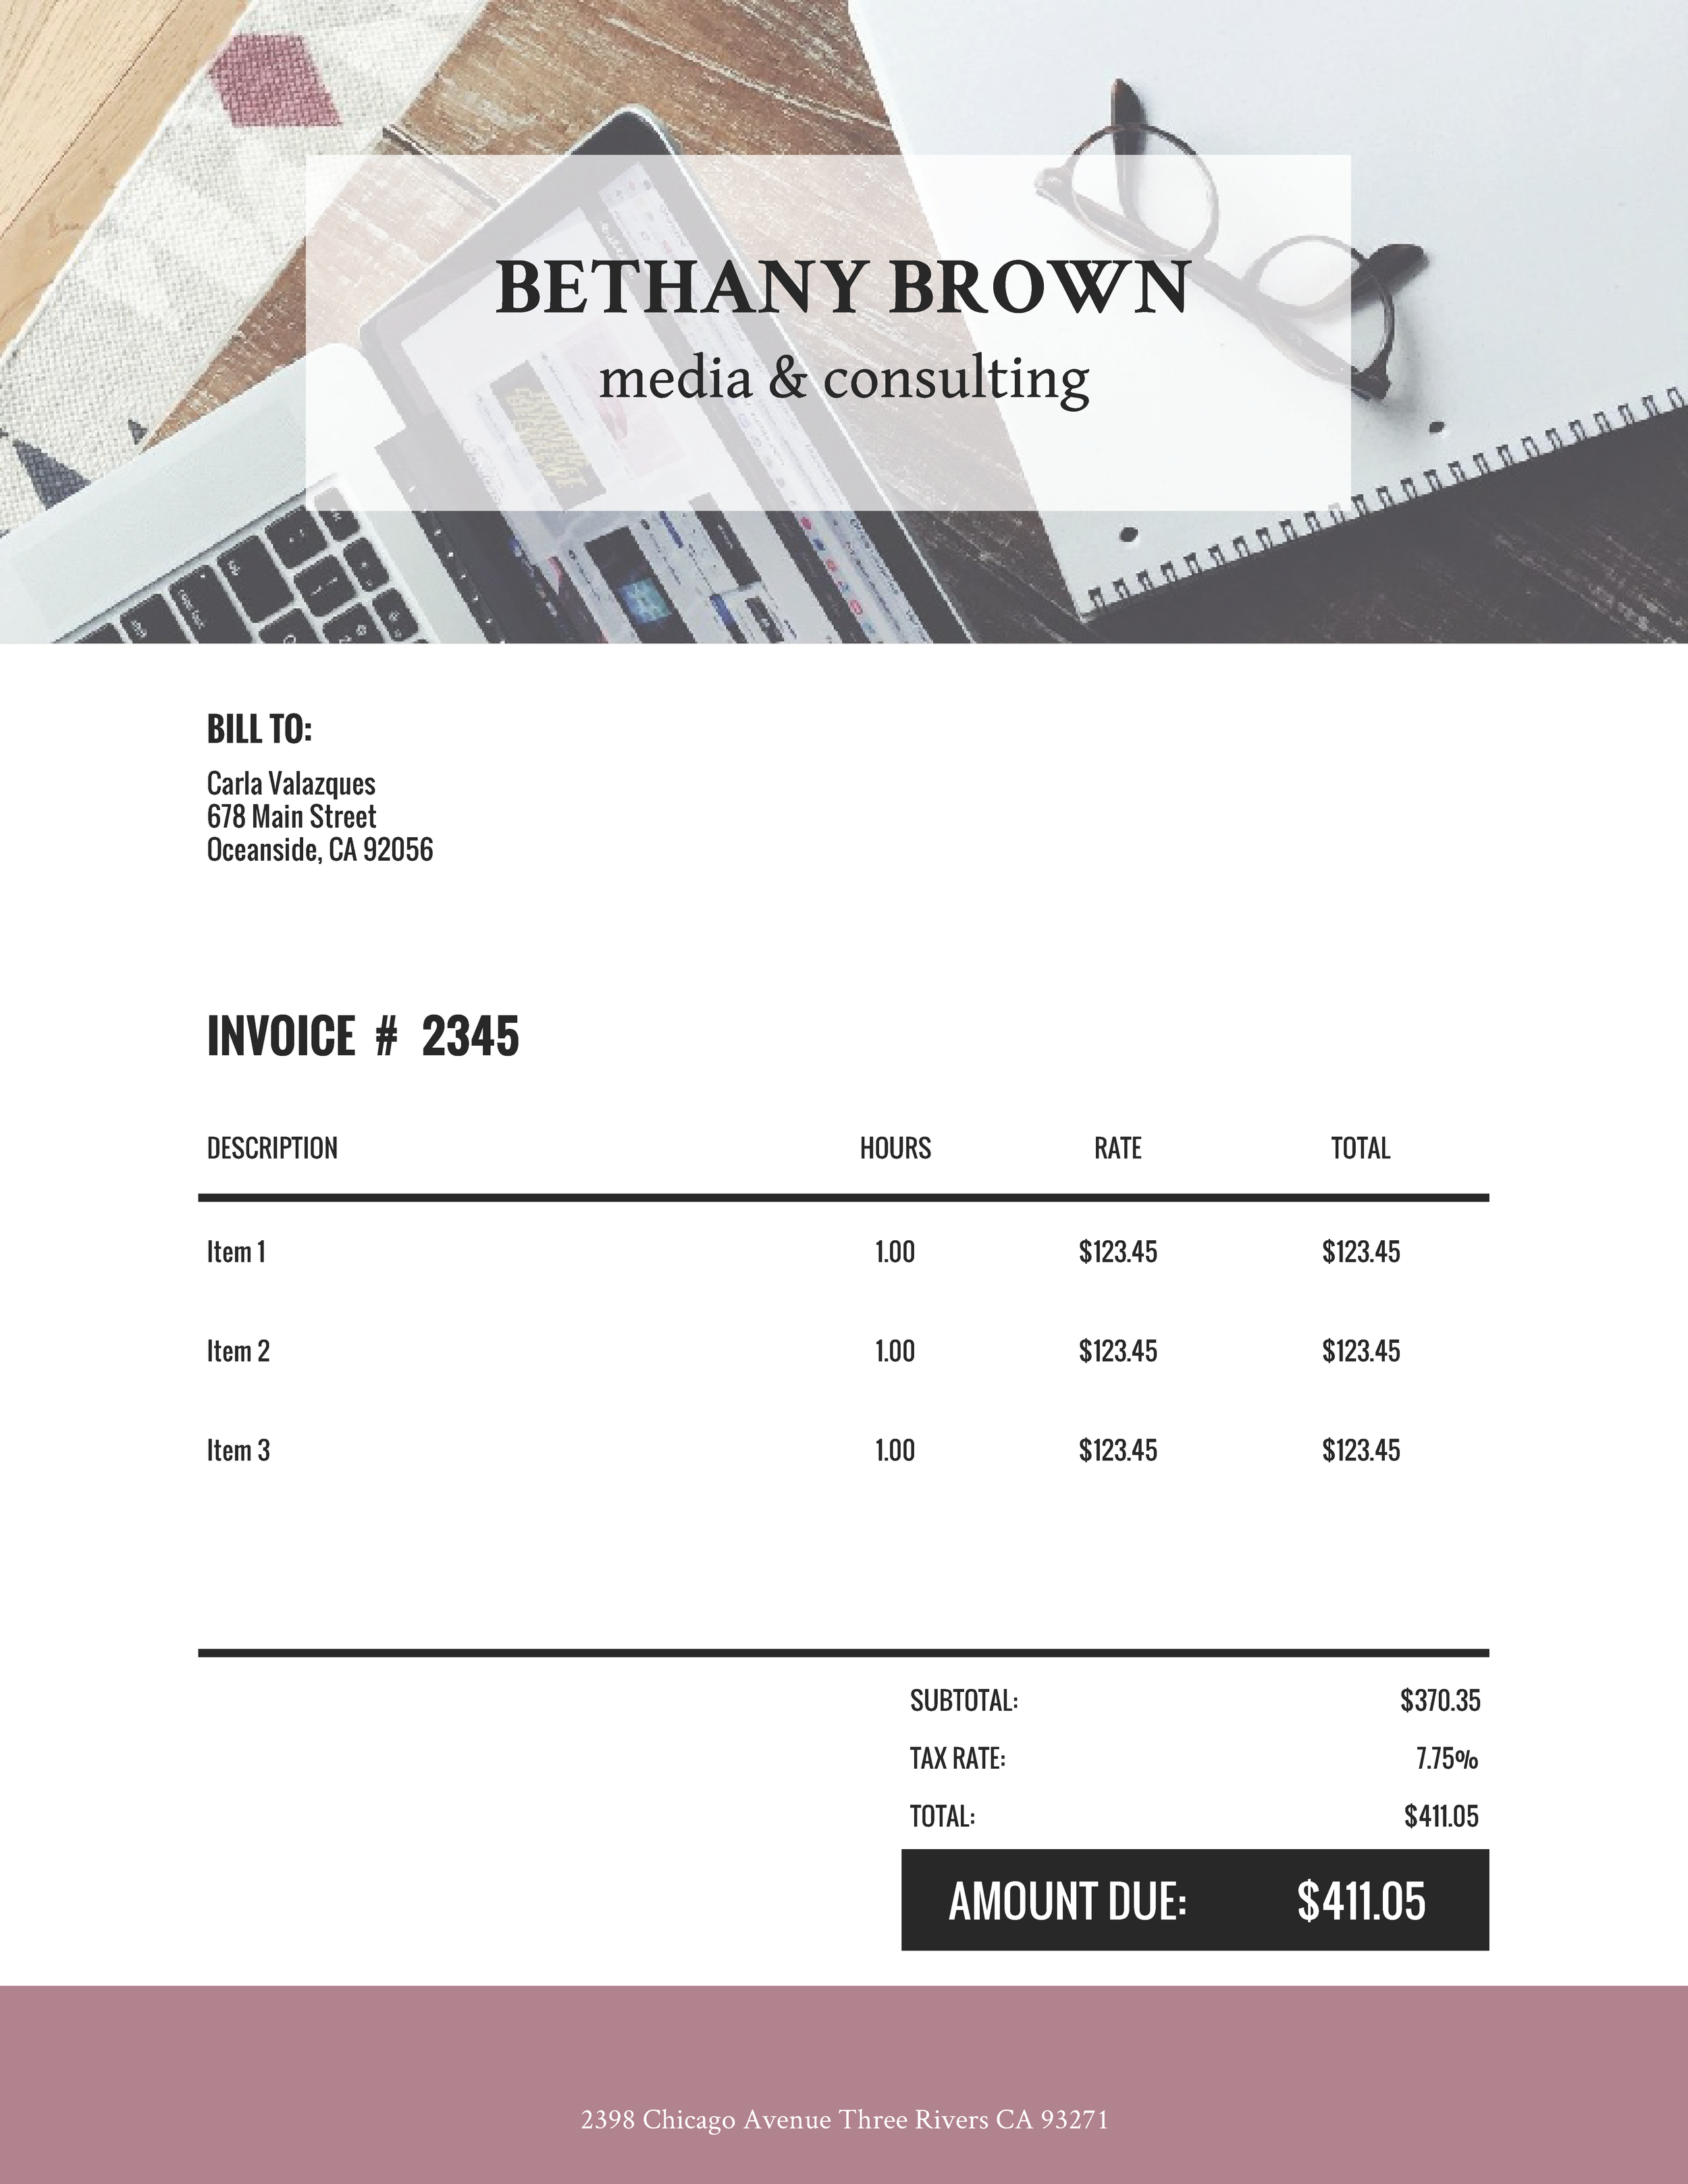 """Bethany Brown Media & Consulting"" Invoice Template from formfarm.io"